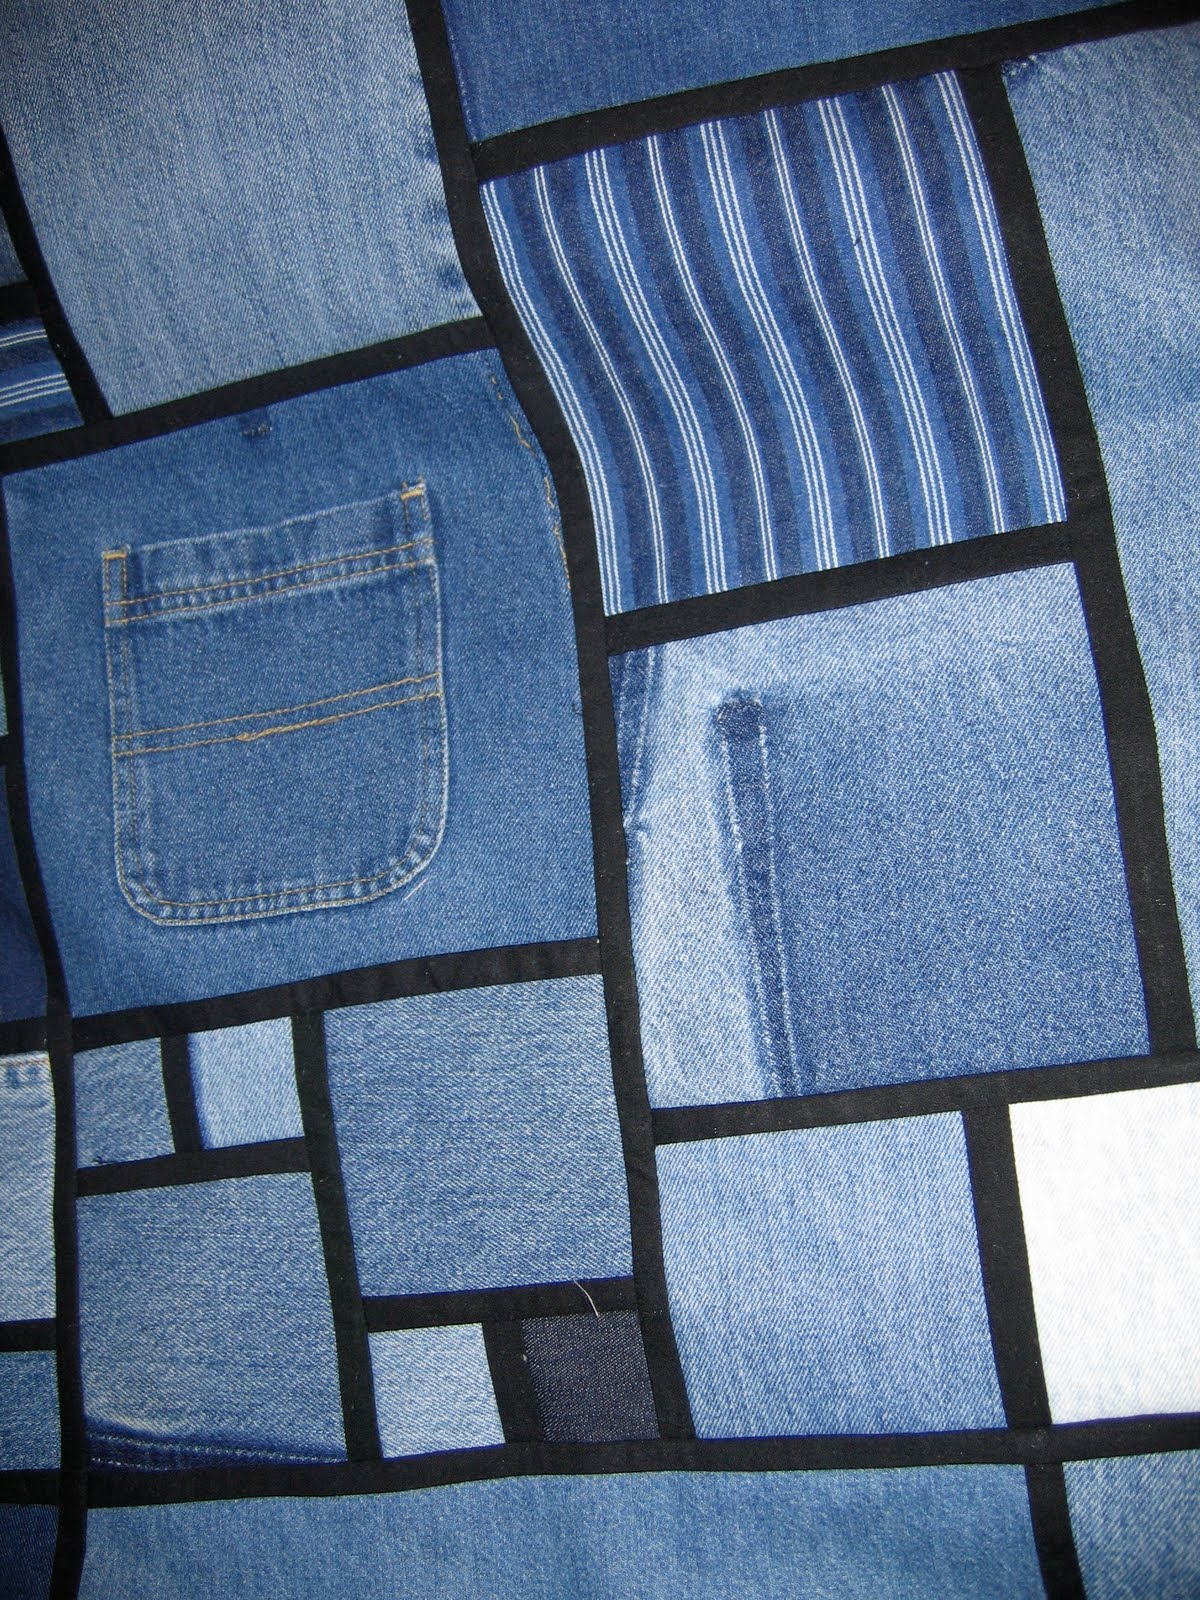 quilts quilt journal sewing april denim circle